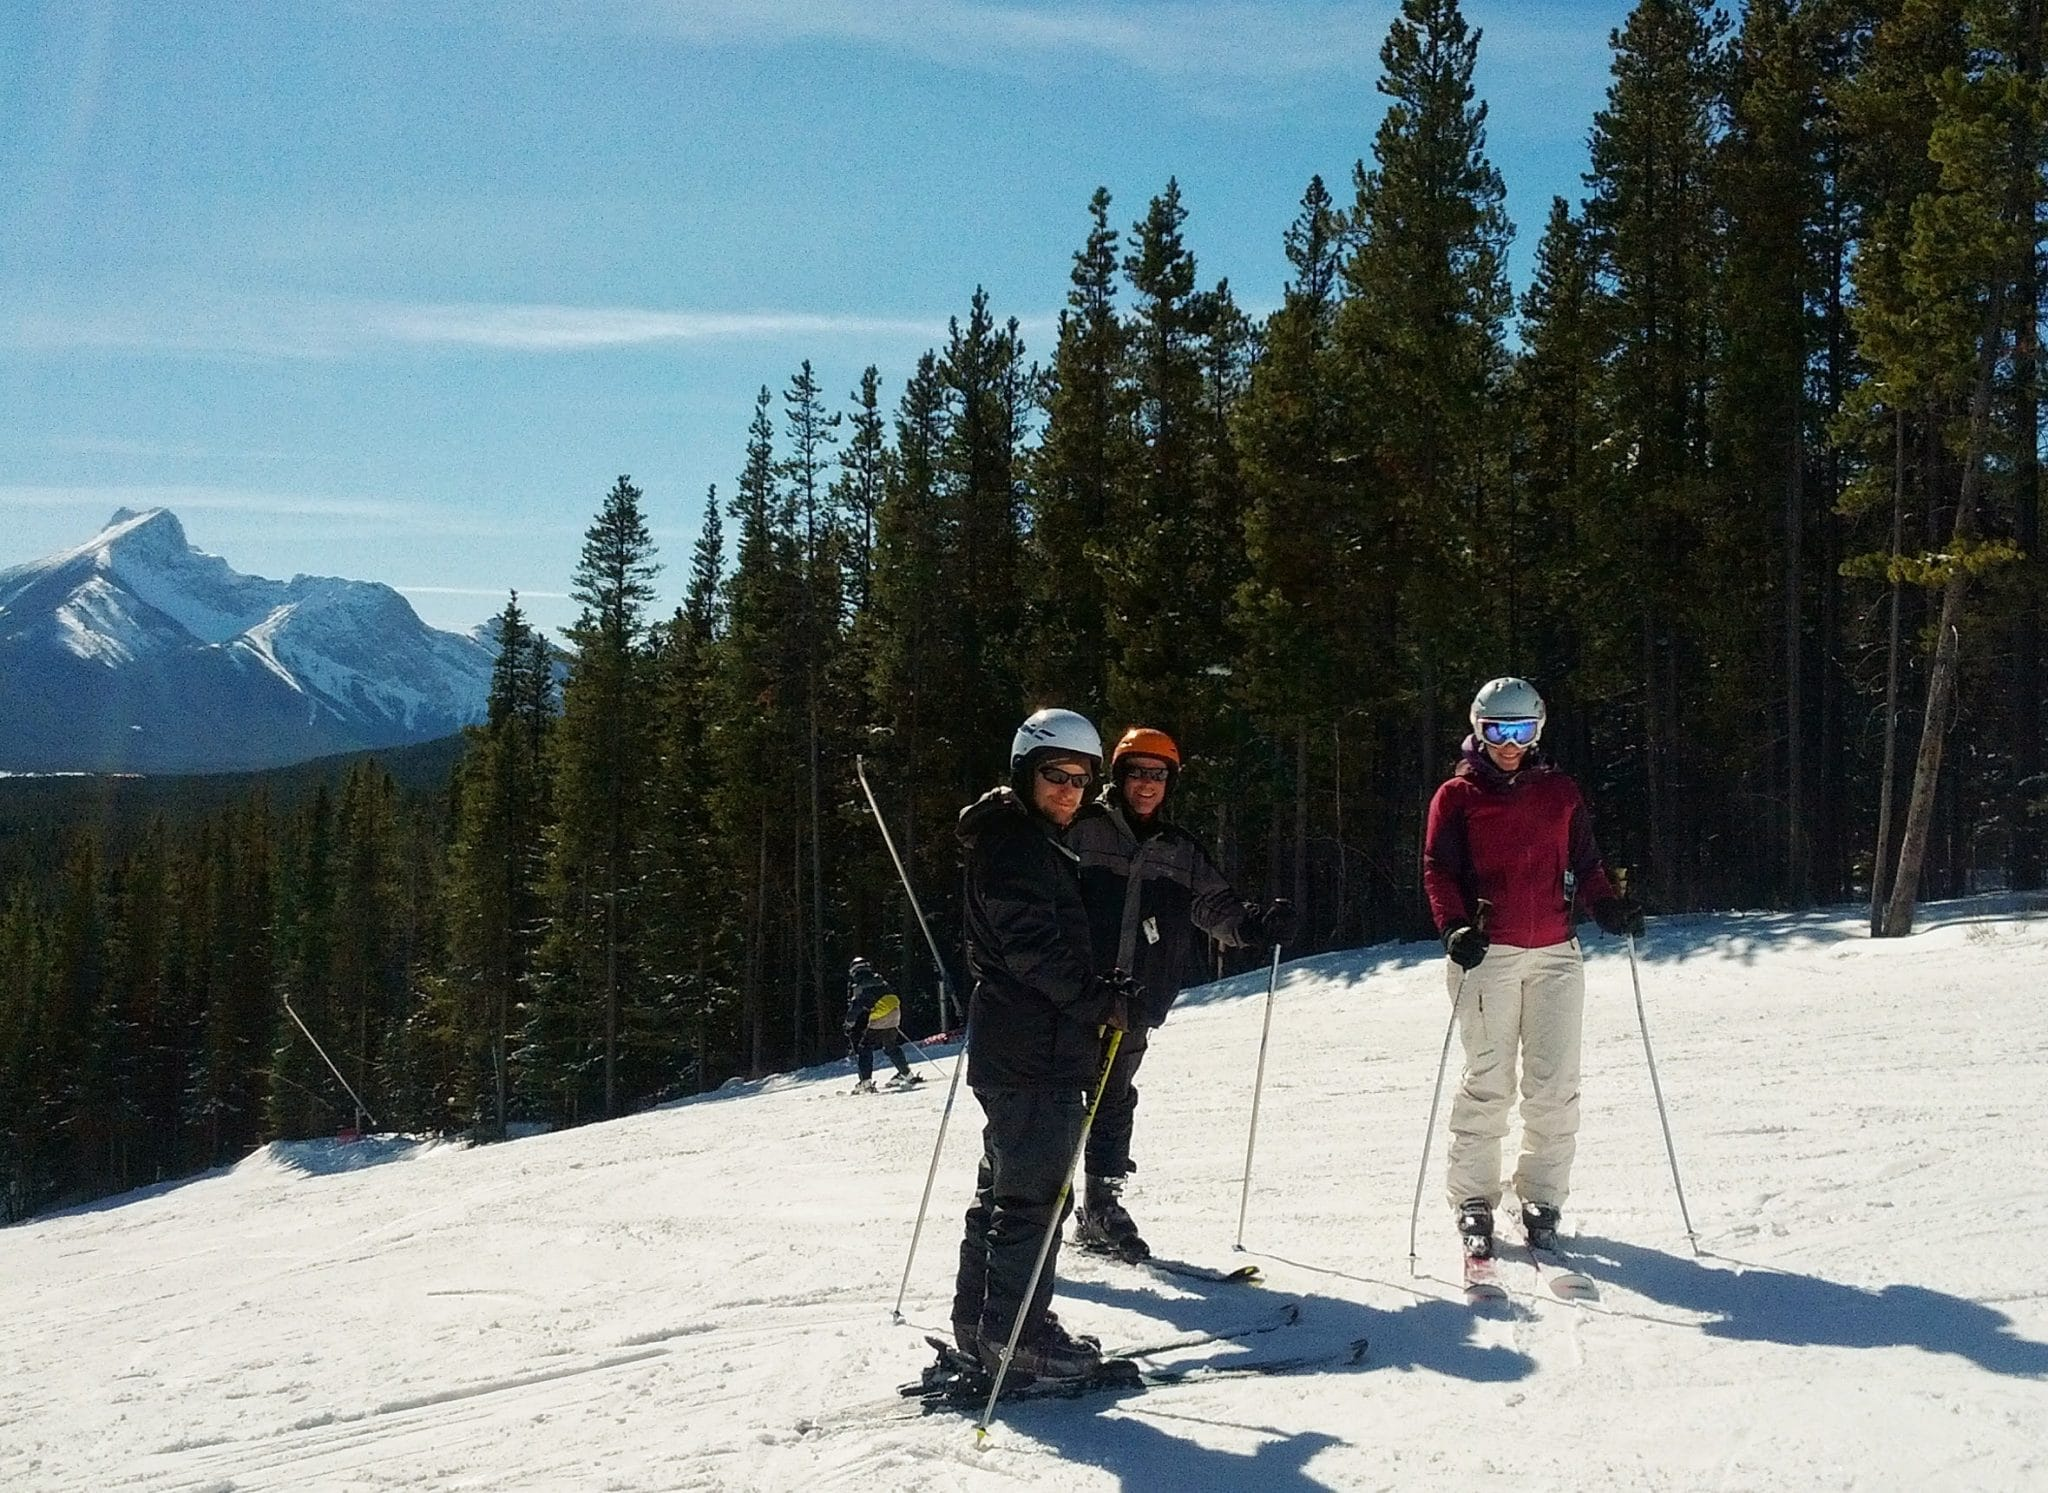 Thea teaching her family to ski at Nakiska